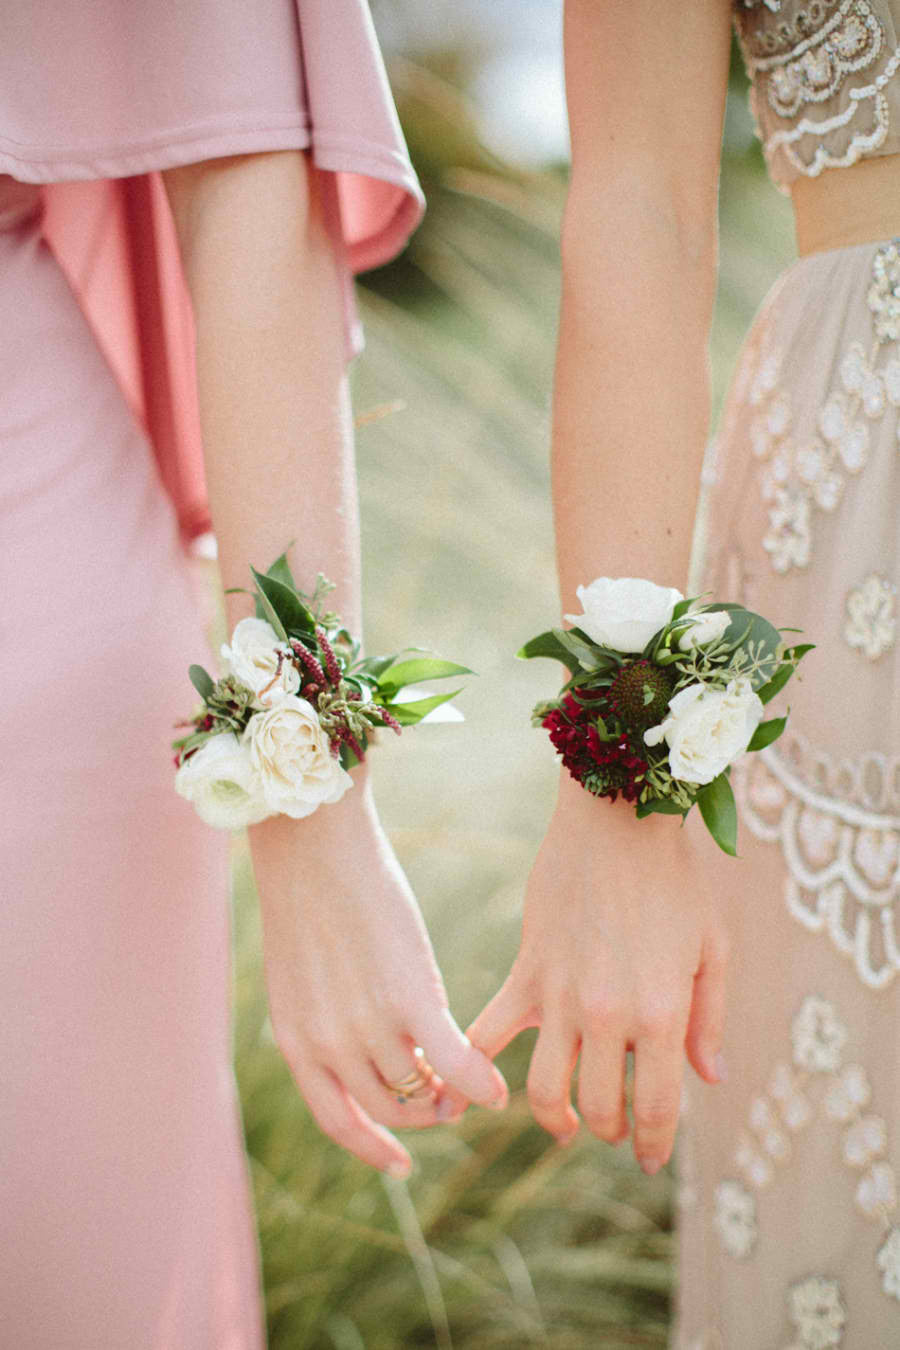 Ways to Step Up Your Summer Wedding Style